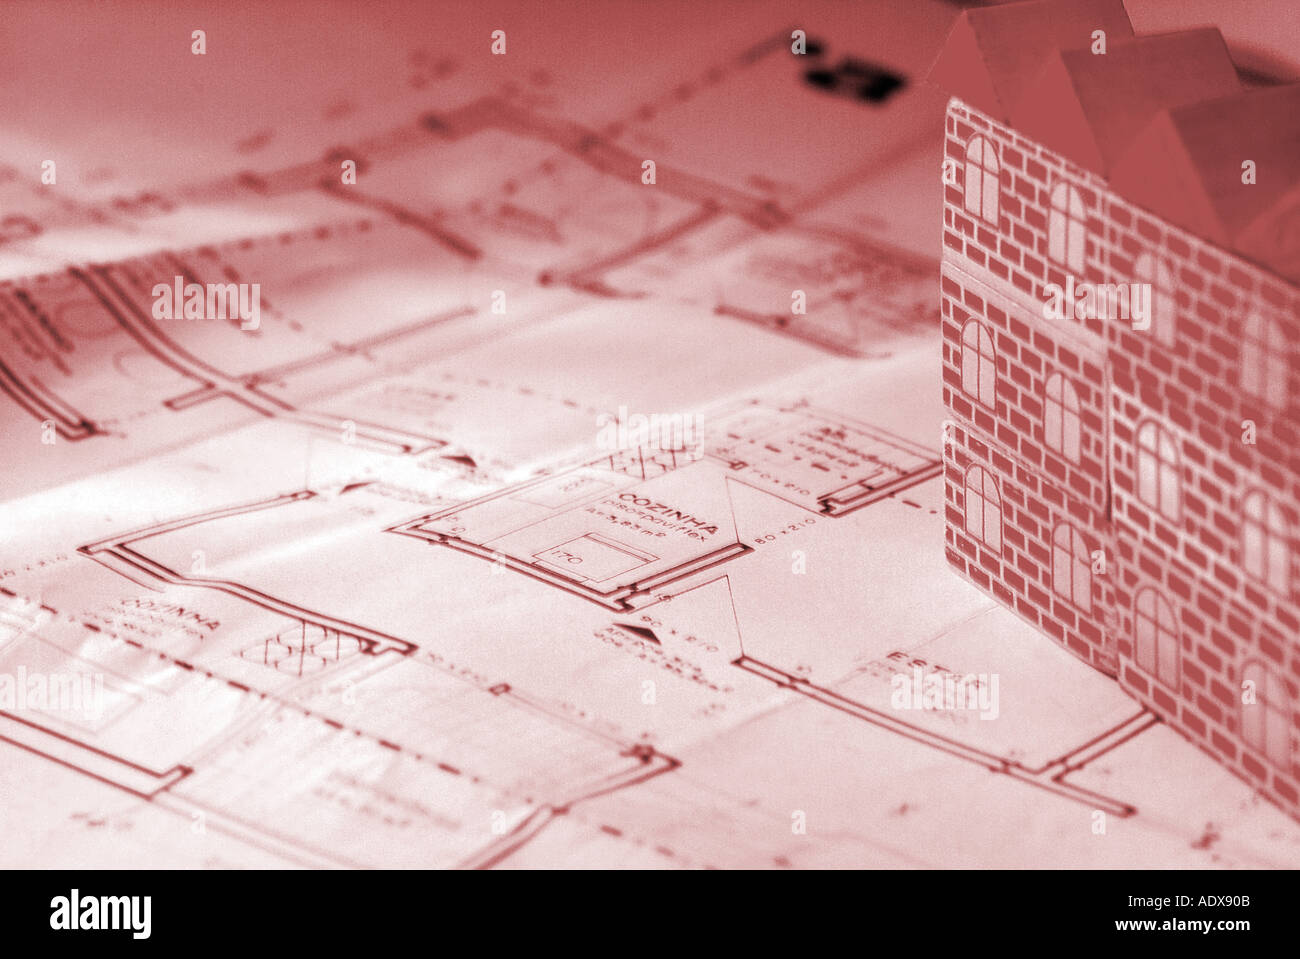 Architecture blueprint blocks toy model building roof plan scheme architecture blueprint blocks toy model building roof plan scheme diagram project concept conceptual background duotone red redd malvernweather Choice Image